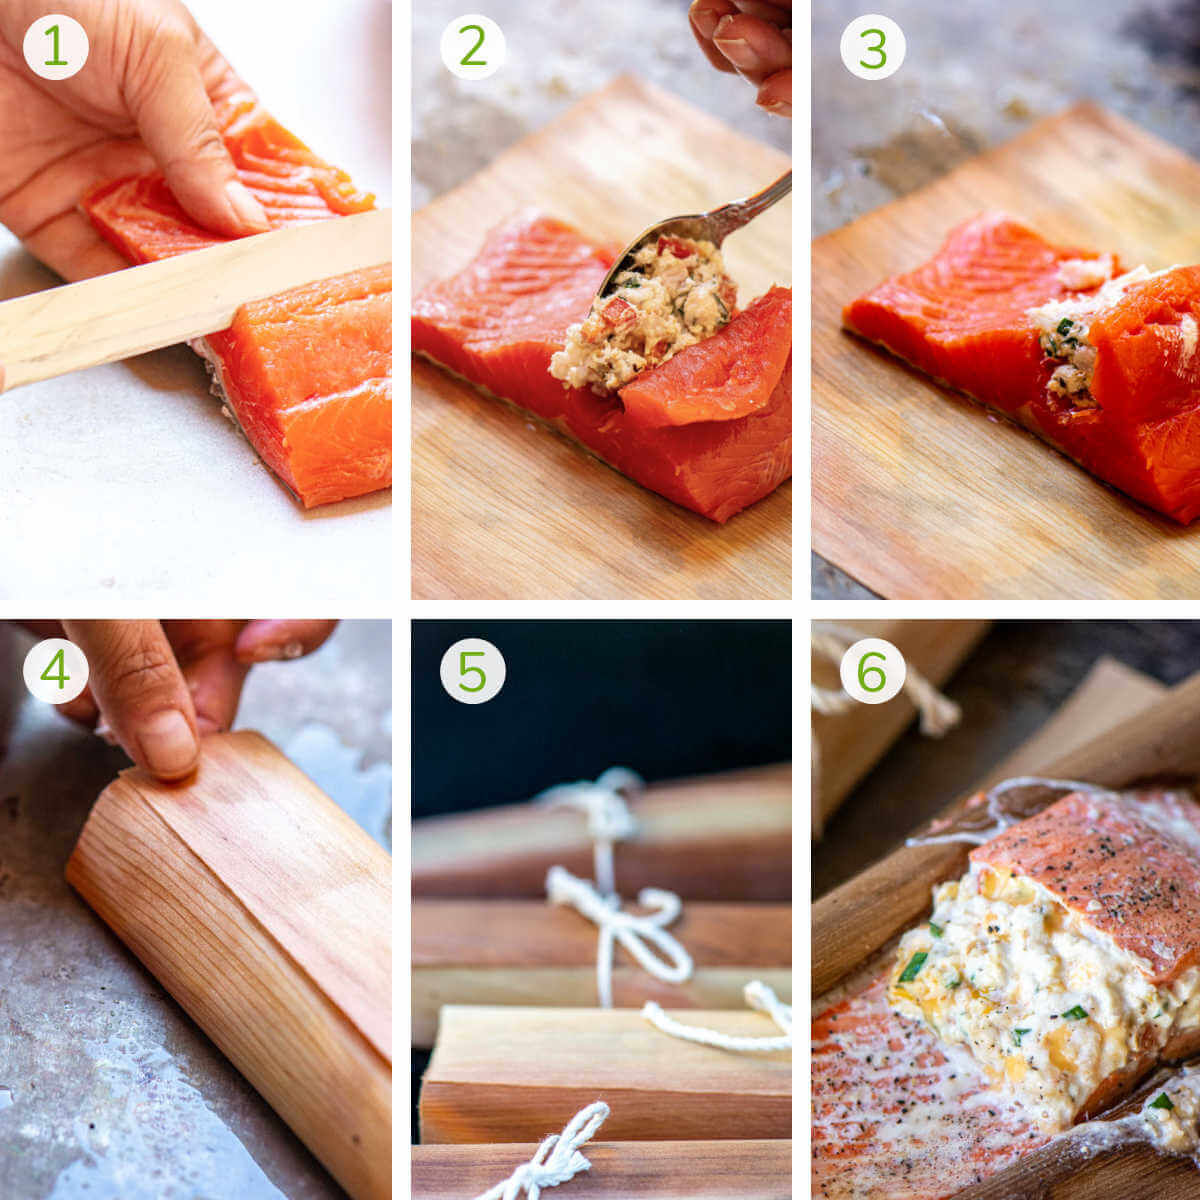 process photos showing how to stuff the salmon, wrap it in cedar, grill it and serving it.